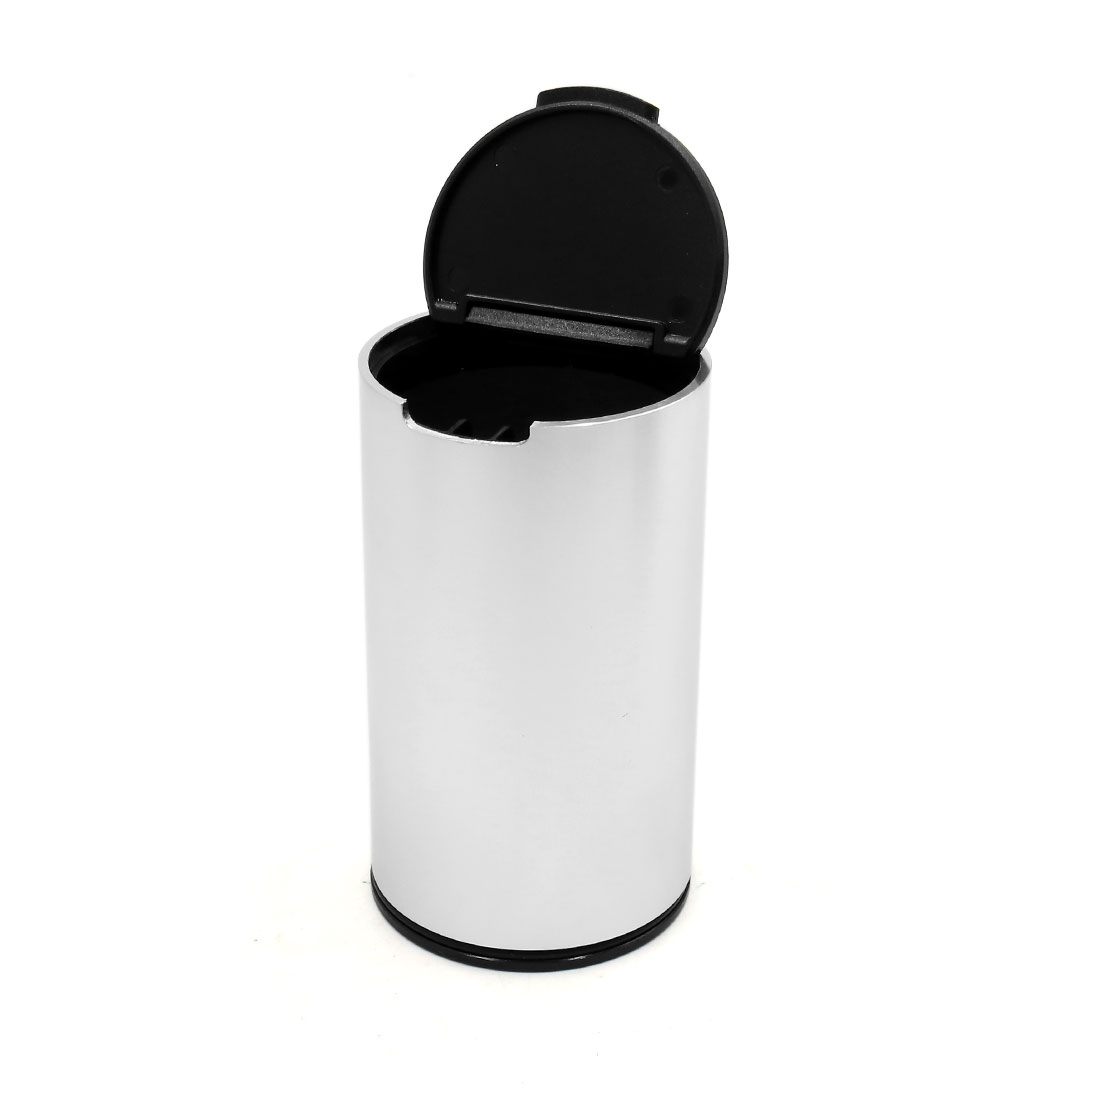 1x Plastic Ashtray Tobacco Ash Tray Storage Cup Container for Car SUV Cup Holder